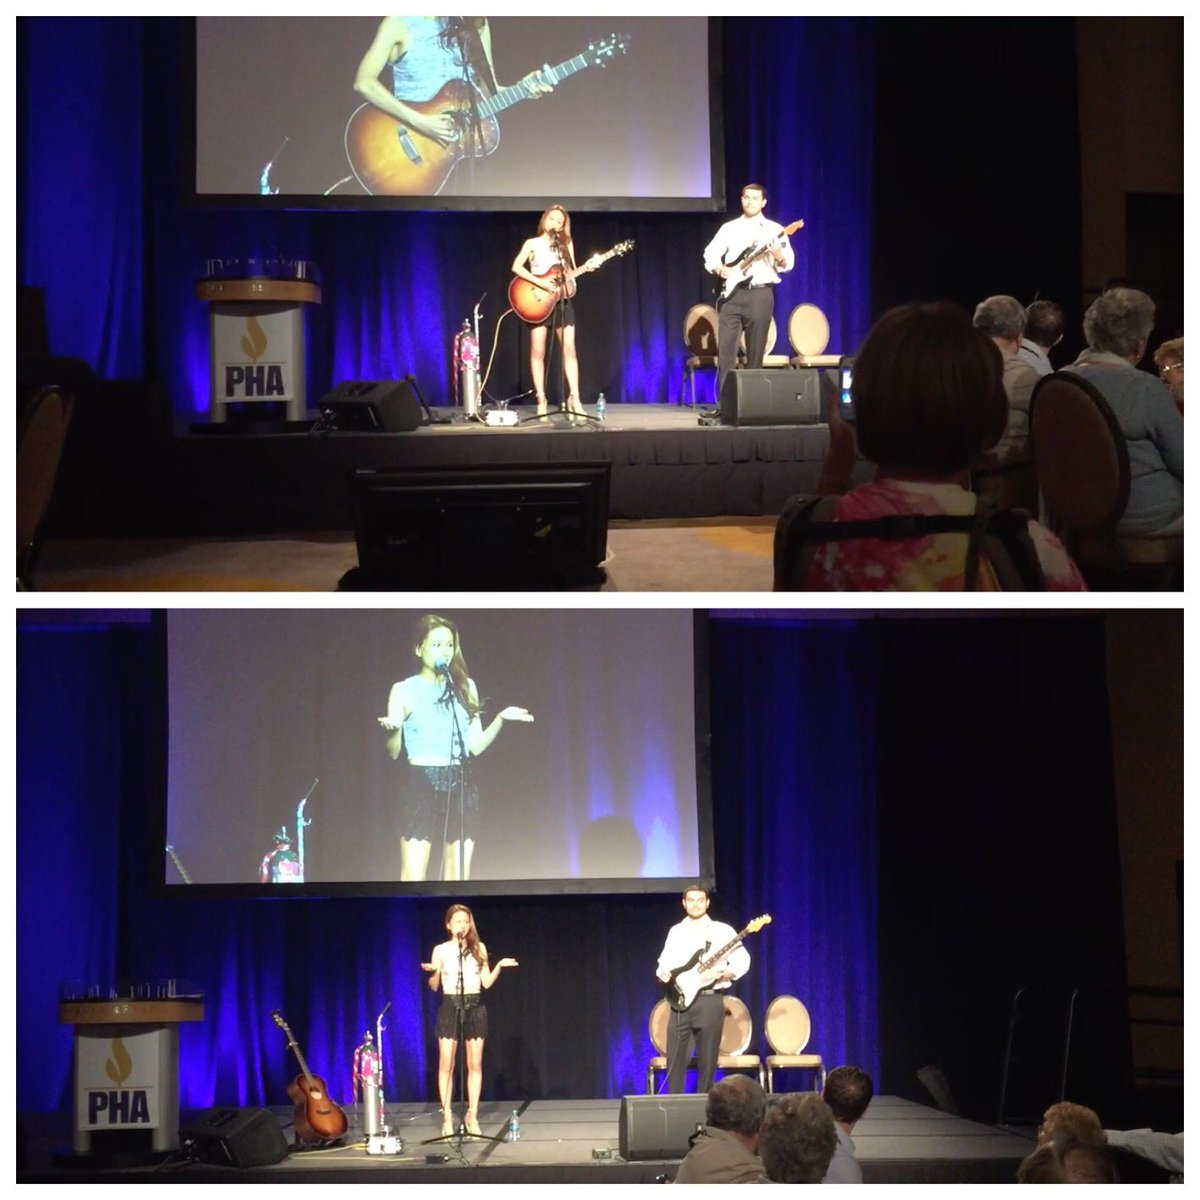 Such a great time performing w/ @Musical_Chemist at the #PHAConference @PHAssociation https://t.co/5xsAo2uMy3